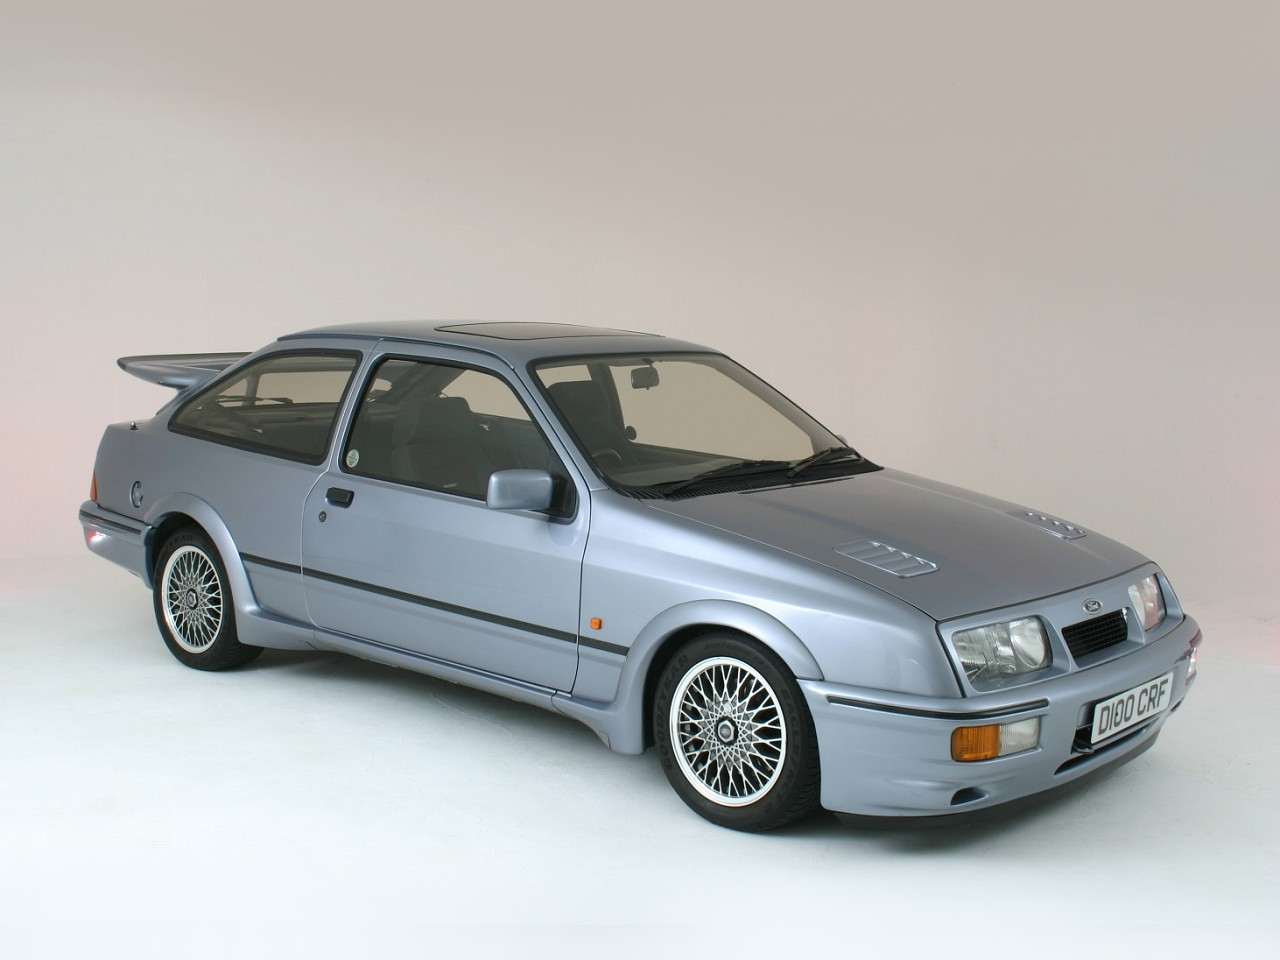 ford sierra rs cosworth 1986 1988 ford sierra rs cosworth 1986 1988 photo 05 car in pictures. Black Bedroom Furniture Sets. Home Design Ideas